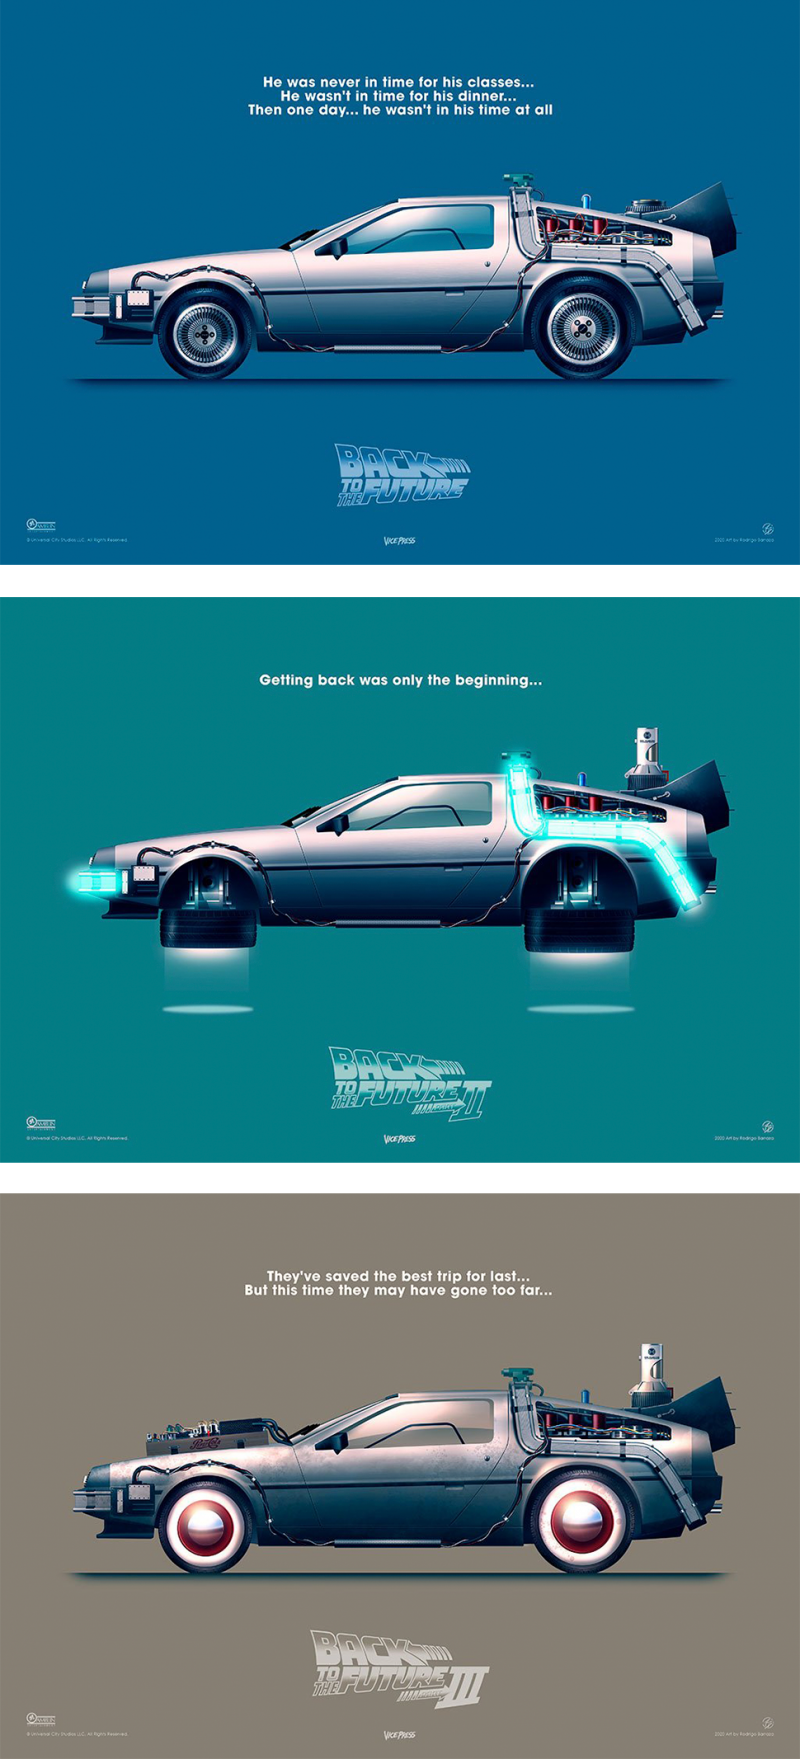 Back to the Future – Delorean Set Art Print - Unframed Lithographs - 16.5 x 11.7